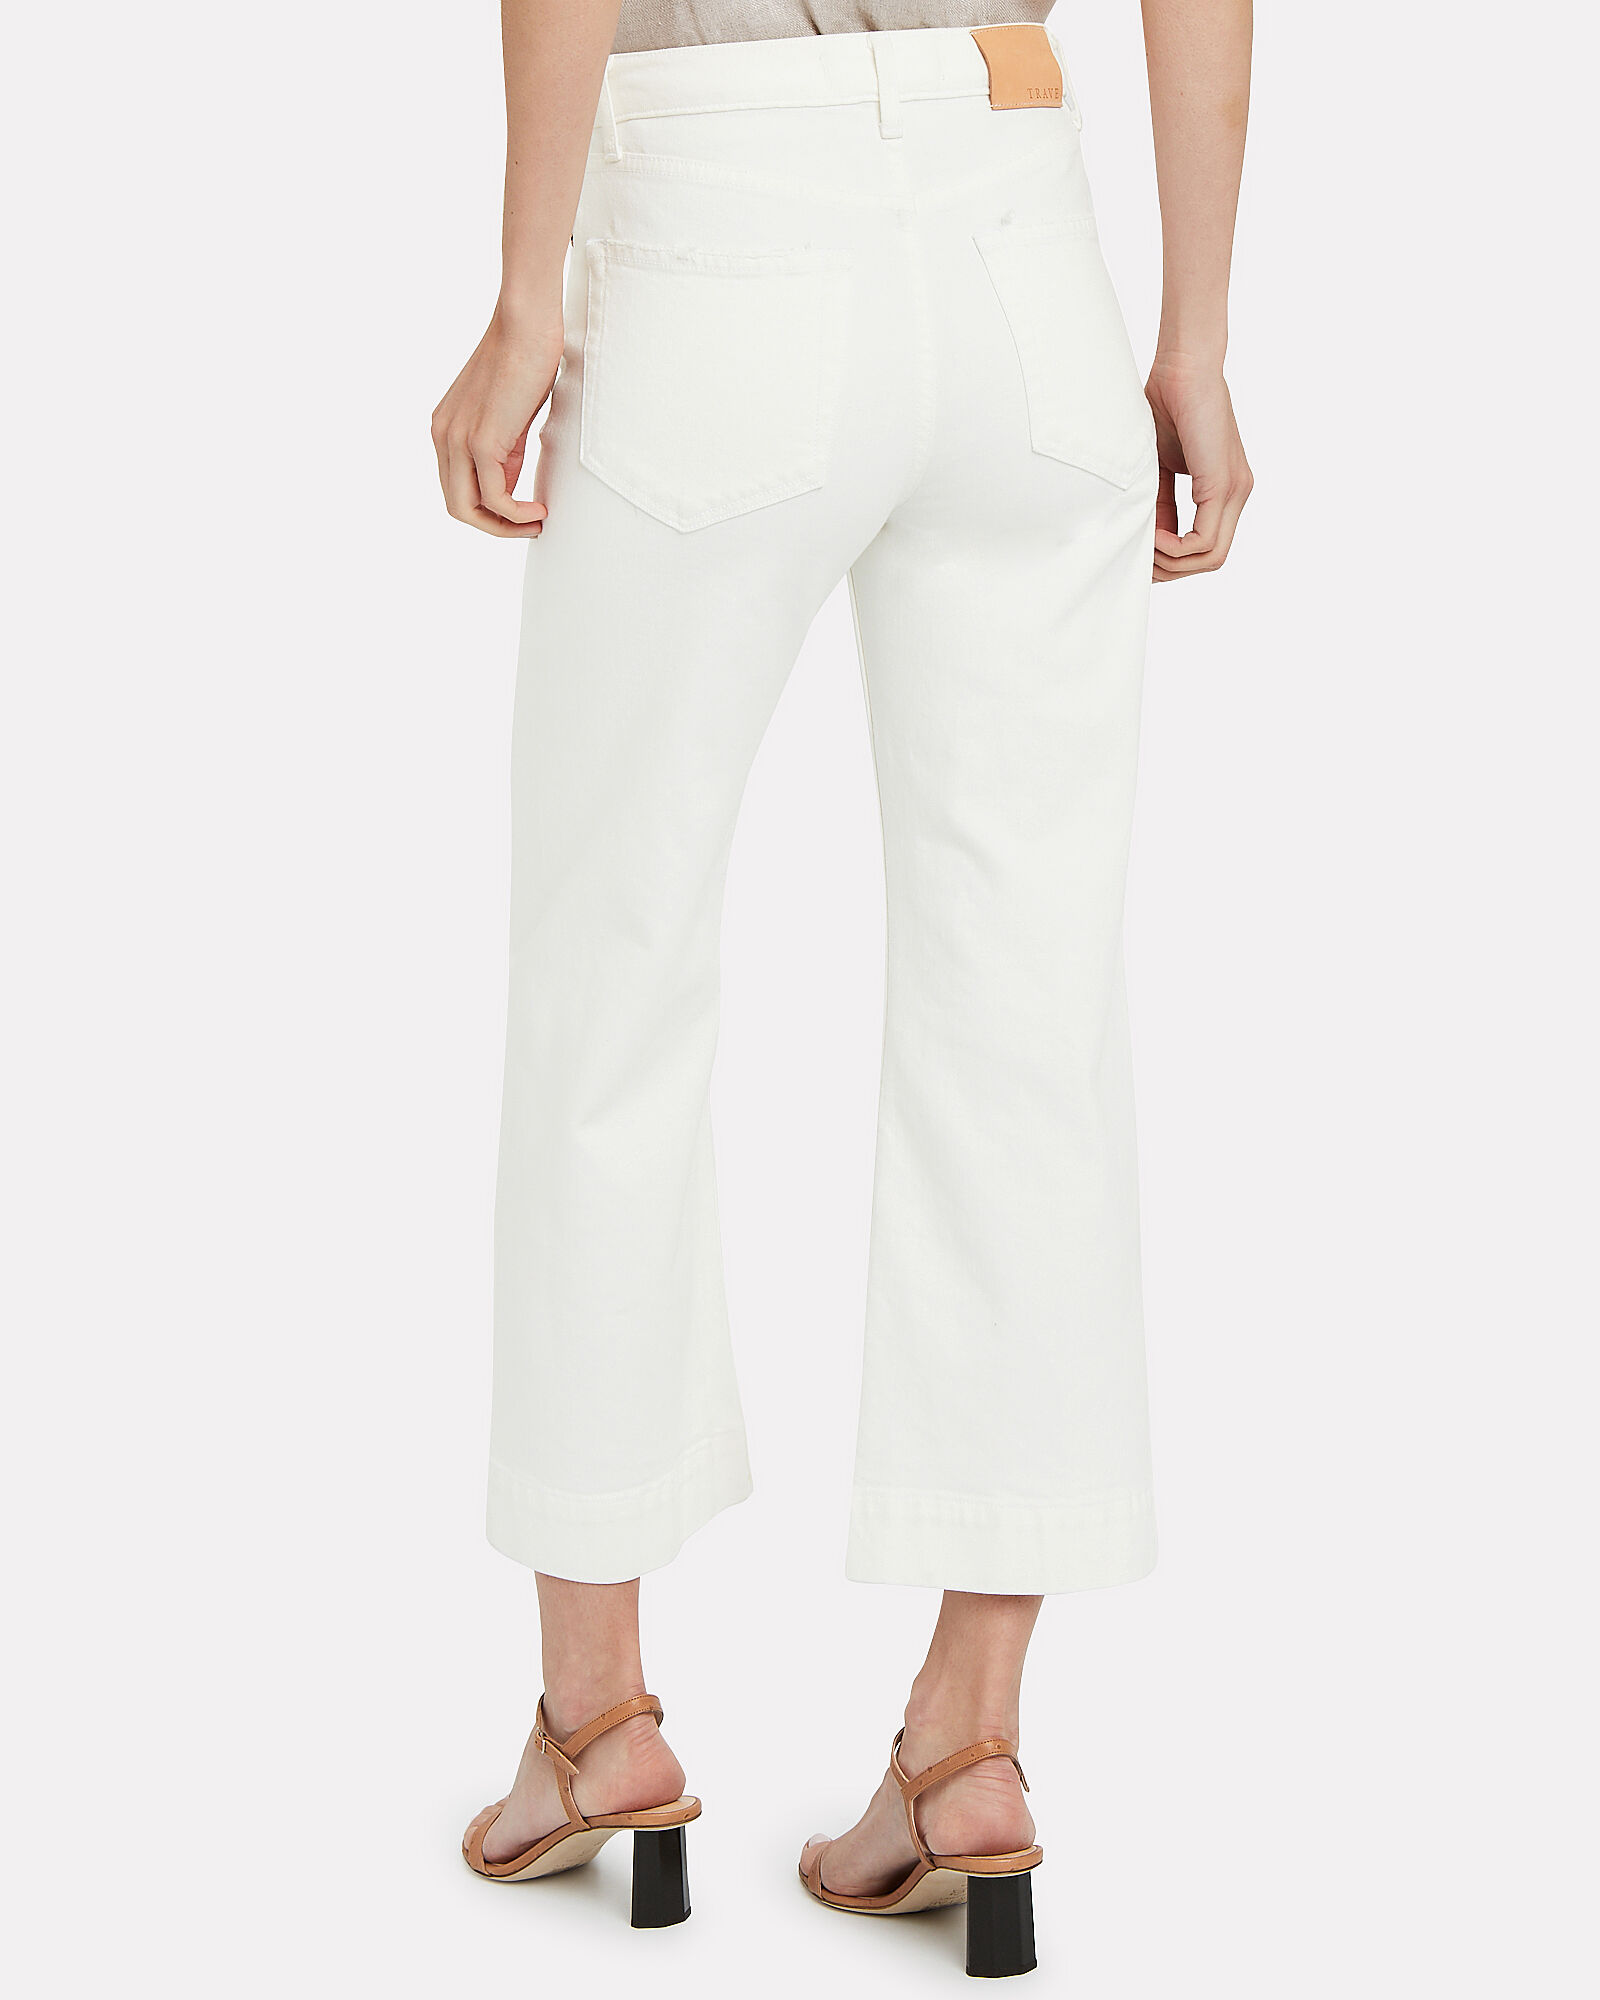 Audrey Cropped Wide Leg Jeans, WHITE, hi-res